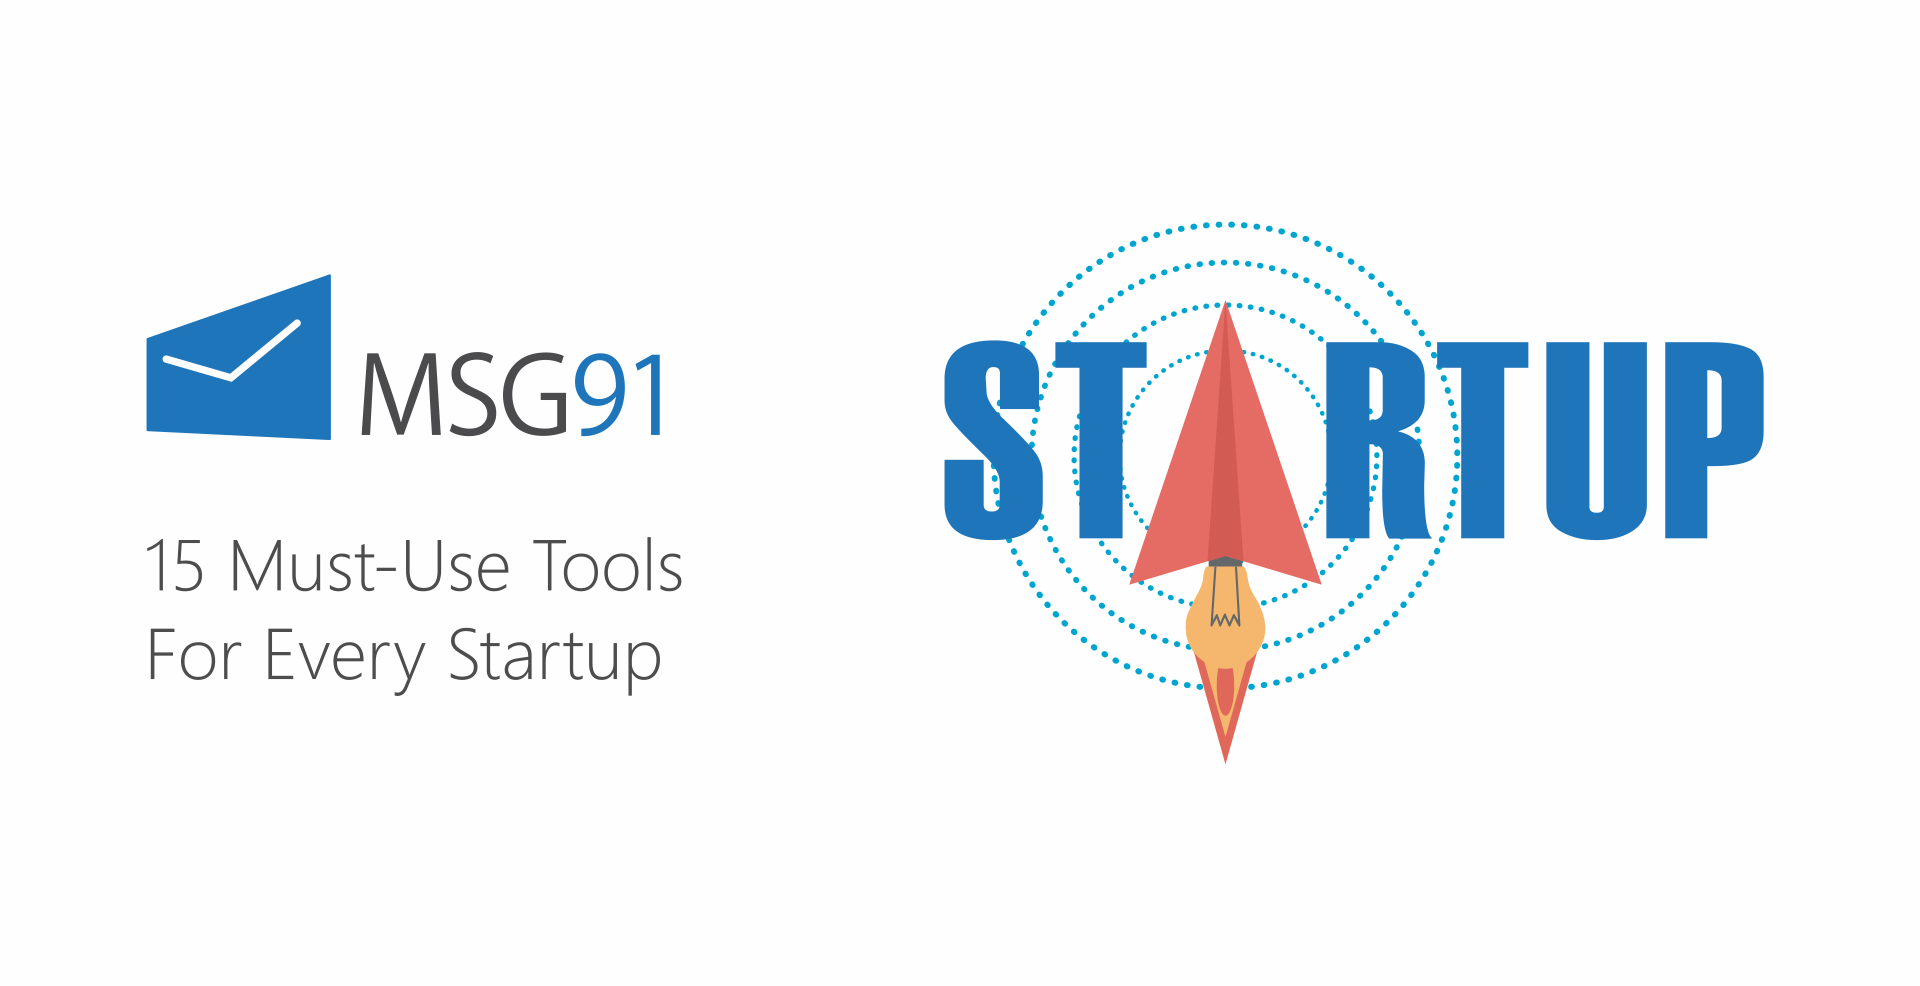 15 Must-Use Tools For Every Startup